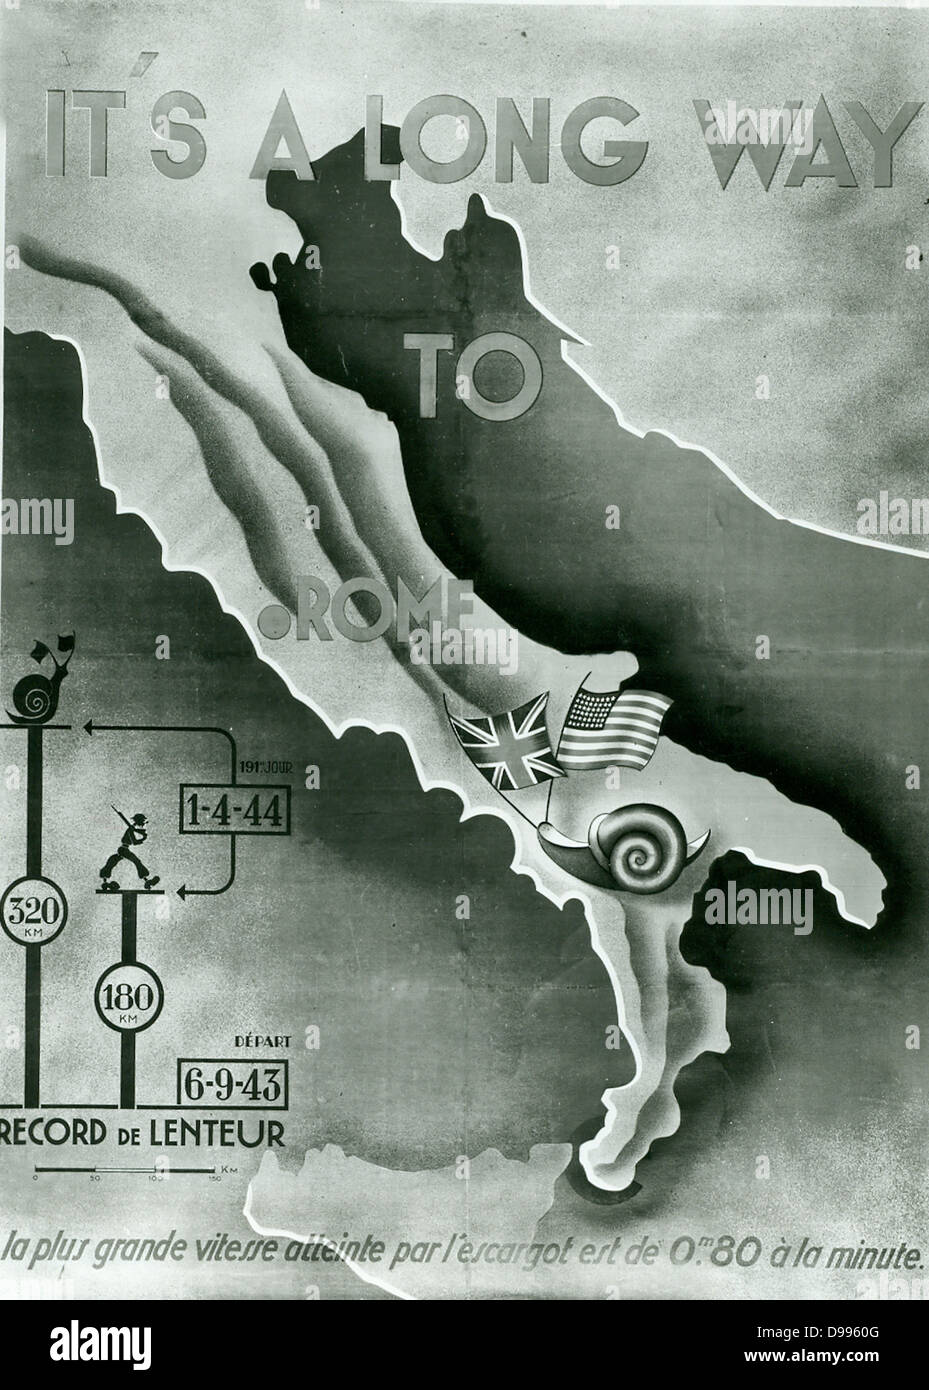 propaganda poster depicting the allied advance in Italy 1944 - Stock Image